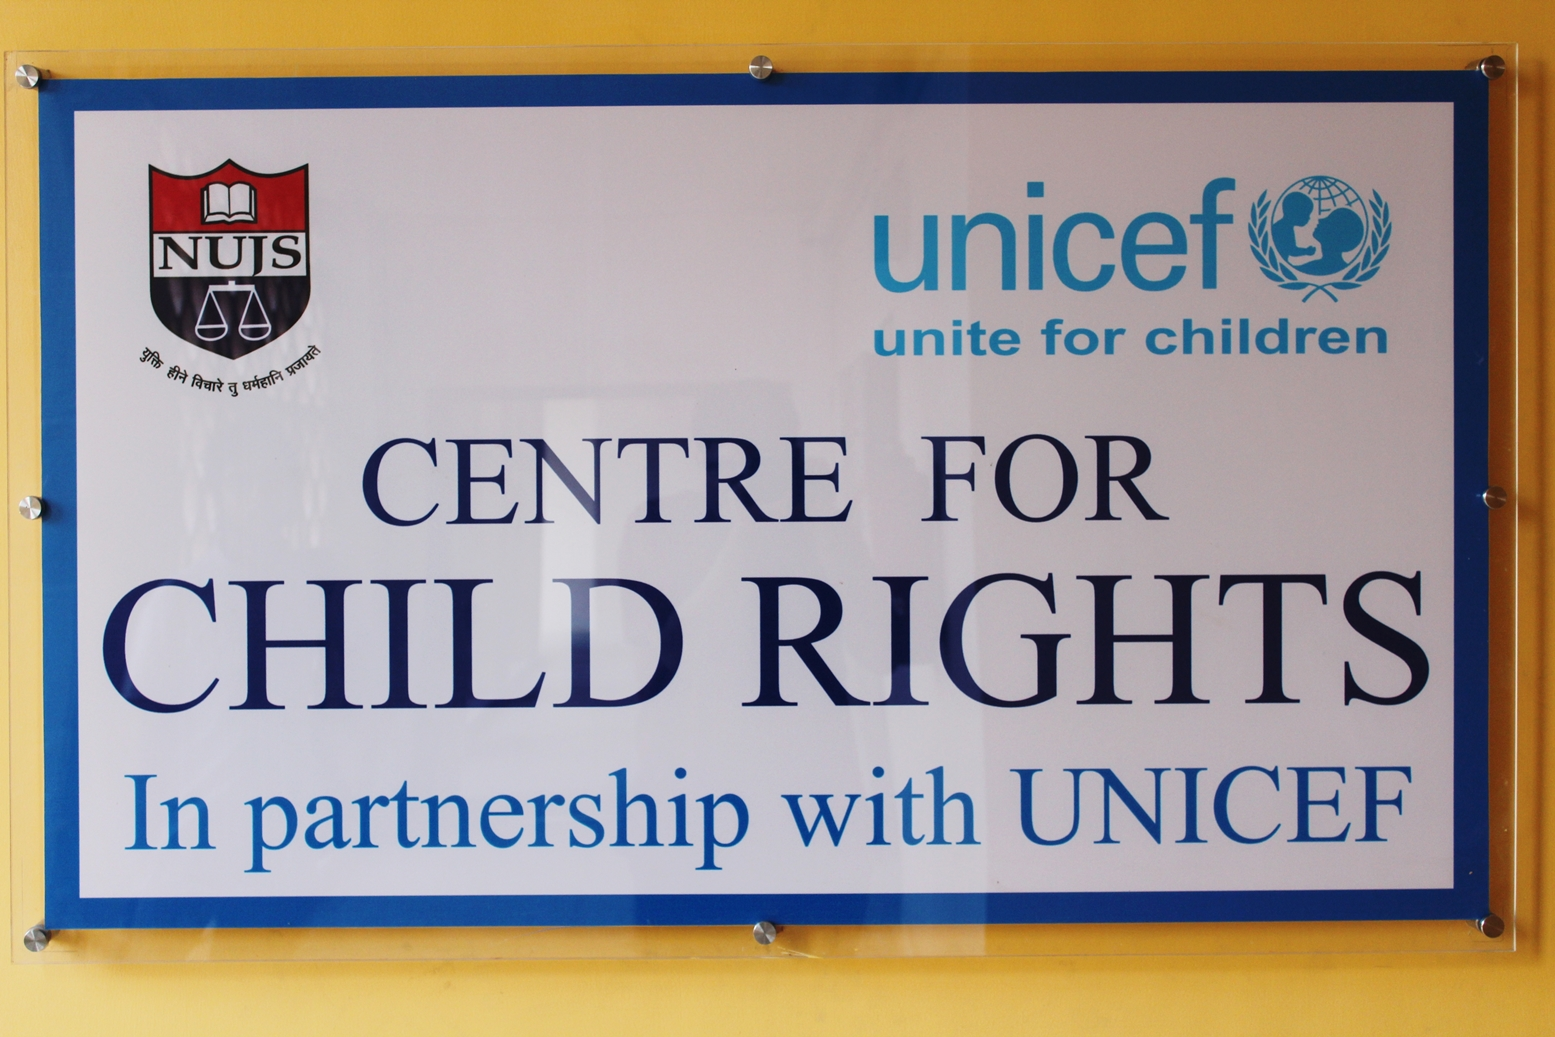 NUJS UNICEF Child Rights Centre